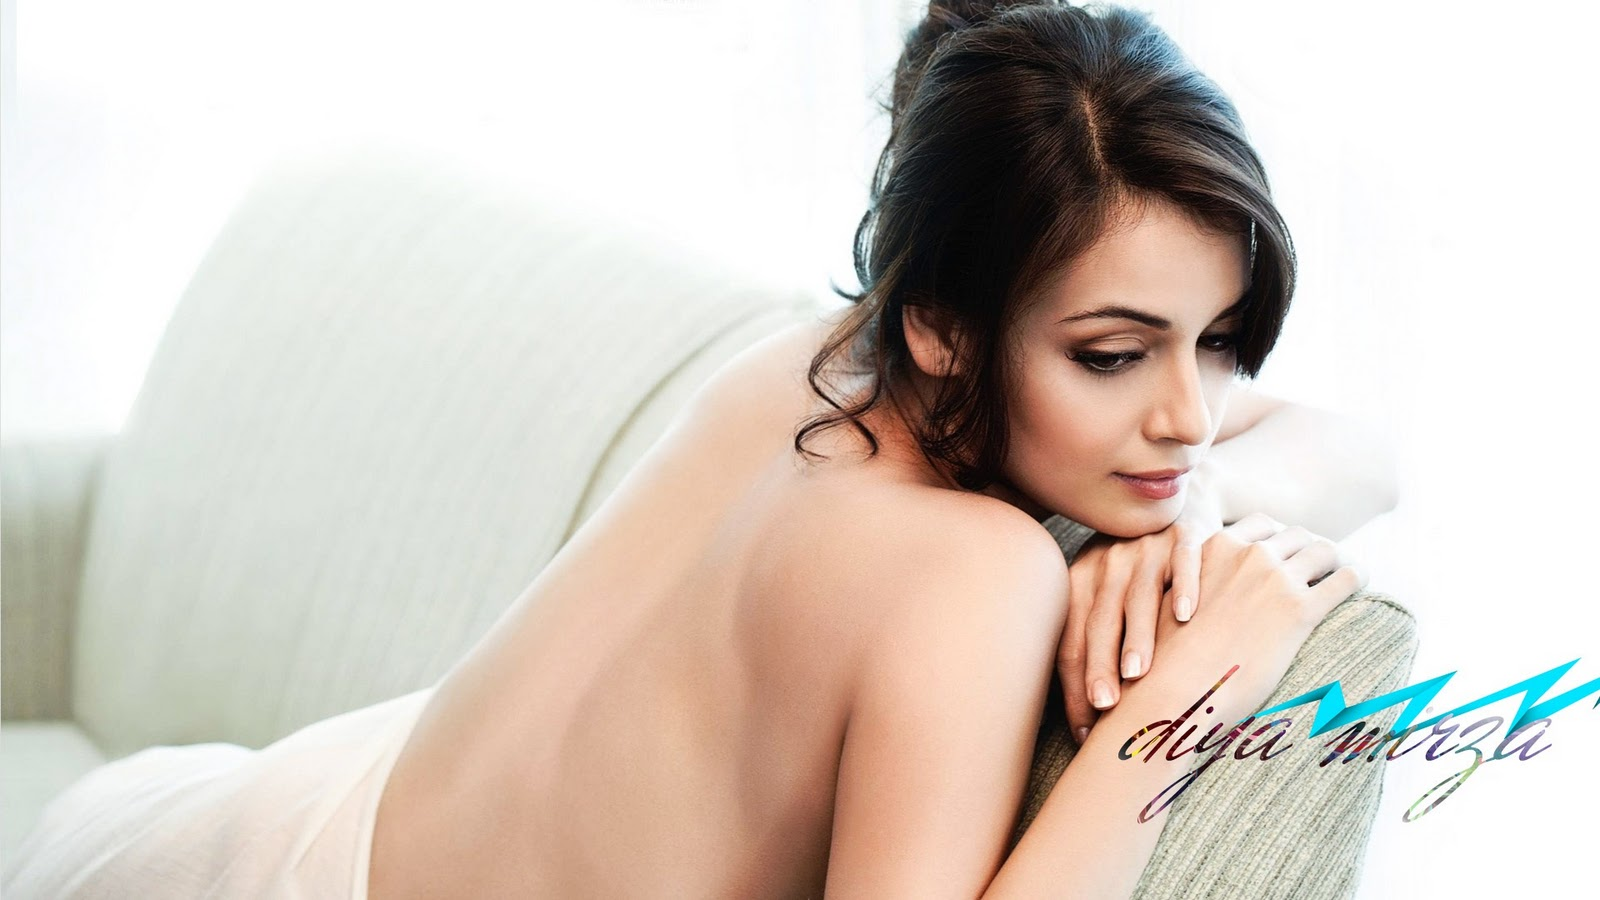 SAB HOT ACTRESS: Dia Mirza Hot Bare Back and Navel Show in Bed: http://sabhotactress.blogspot.com/2011/03/dia-mirza-hot-bare-back-and-navel-show.html